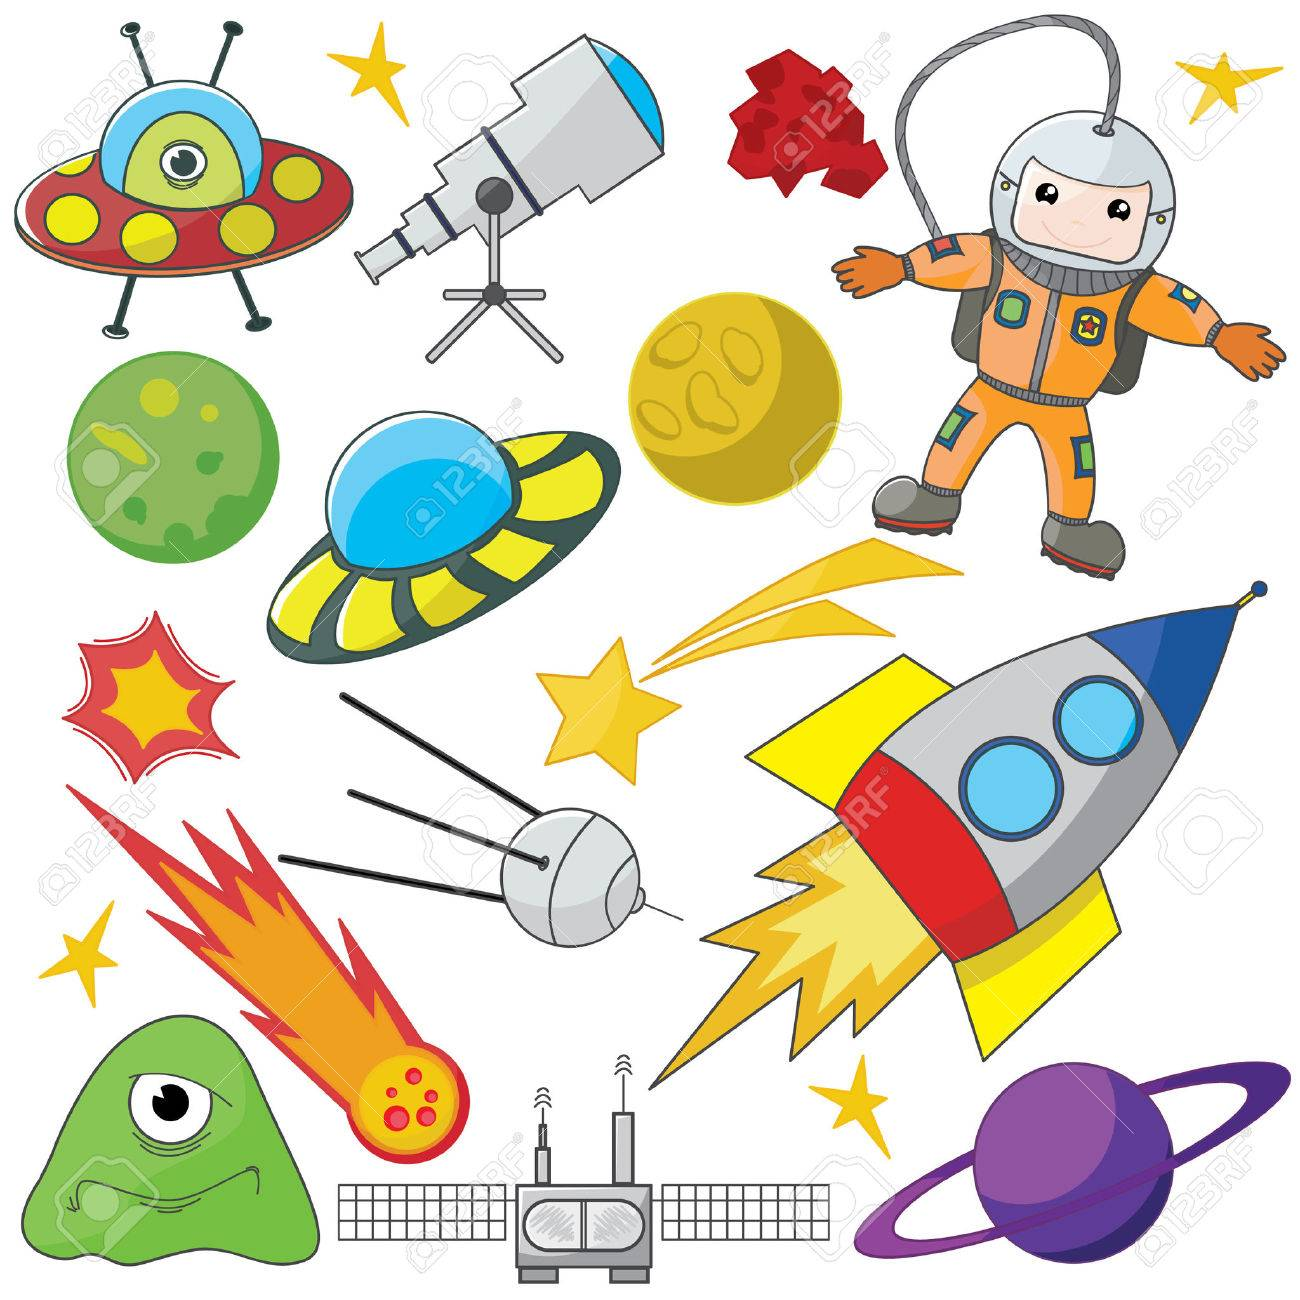 Fully editable vector illustration of a collection of space elements Stock Vector - 5863913